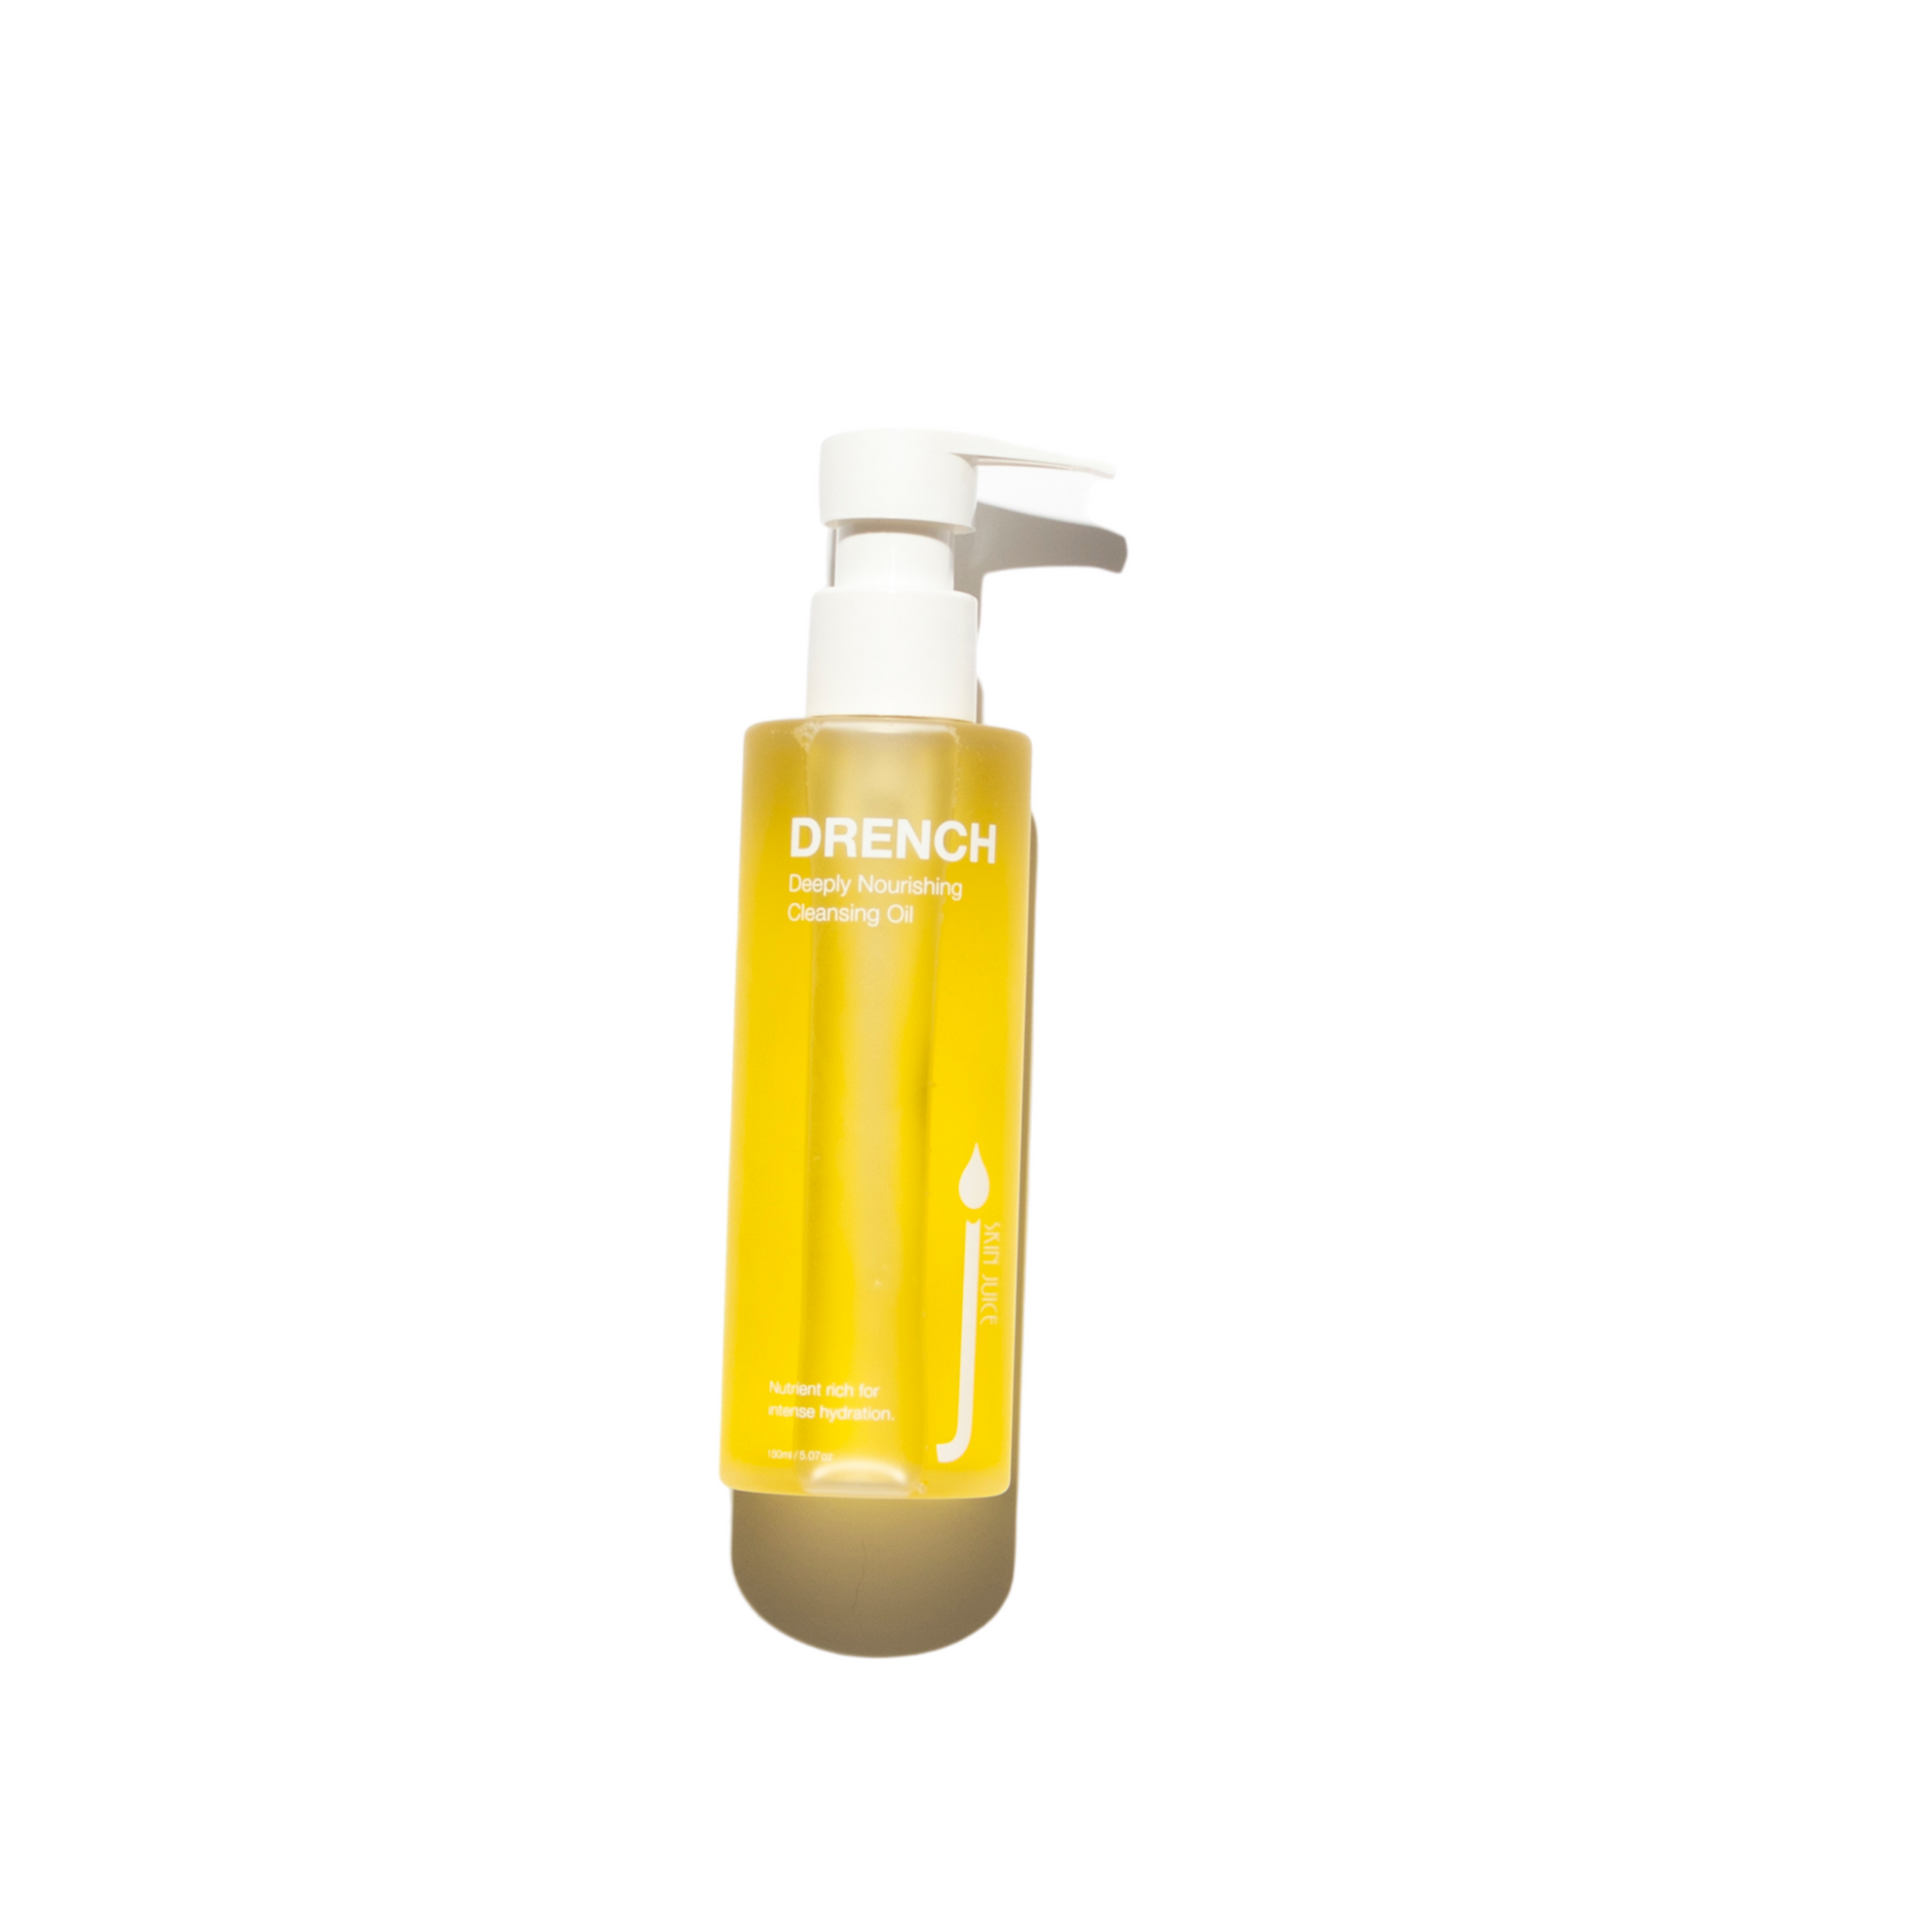 This unique oil cleanser from Skin Juice dissolves oil and makeup and restores skin's pH balance. Official Skin Juice stockist. 100% natural Australian skincare